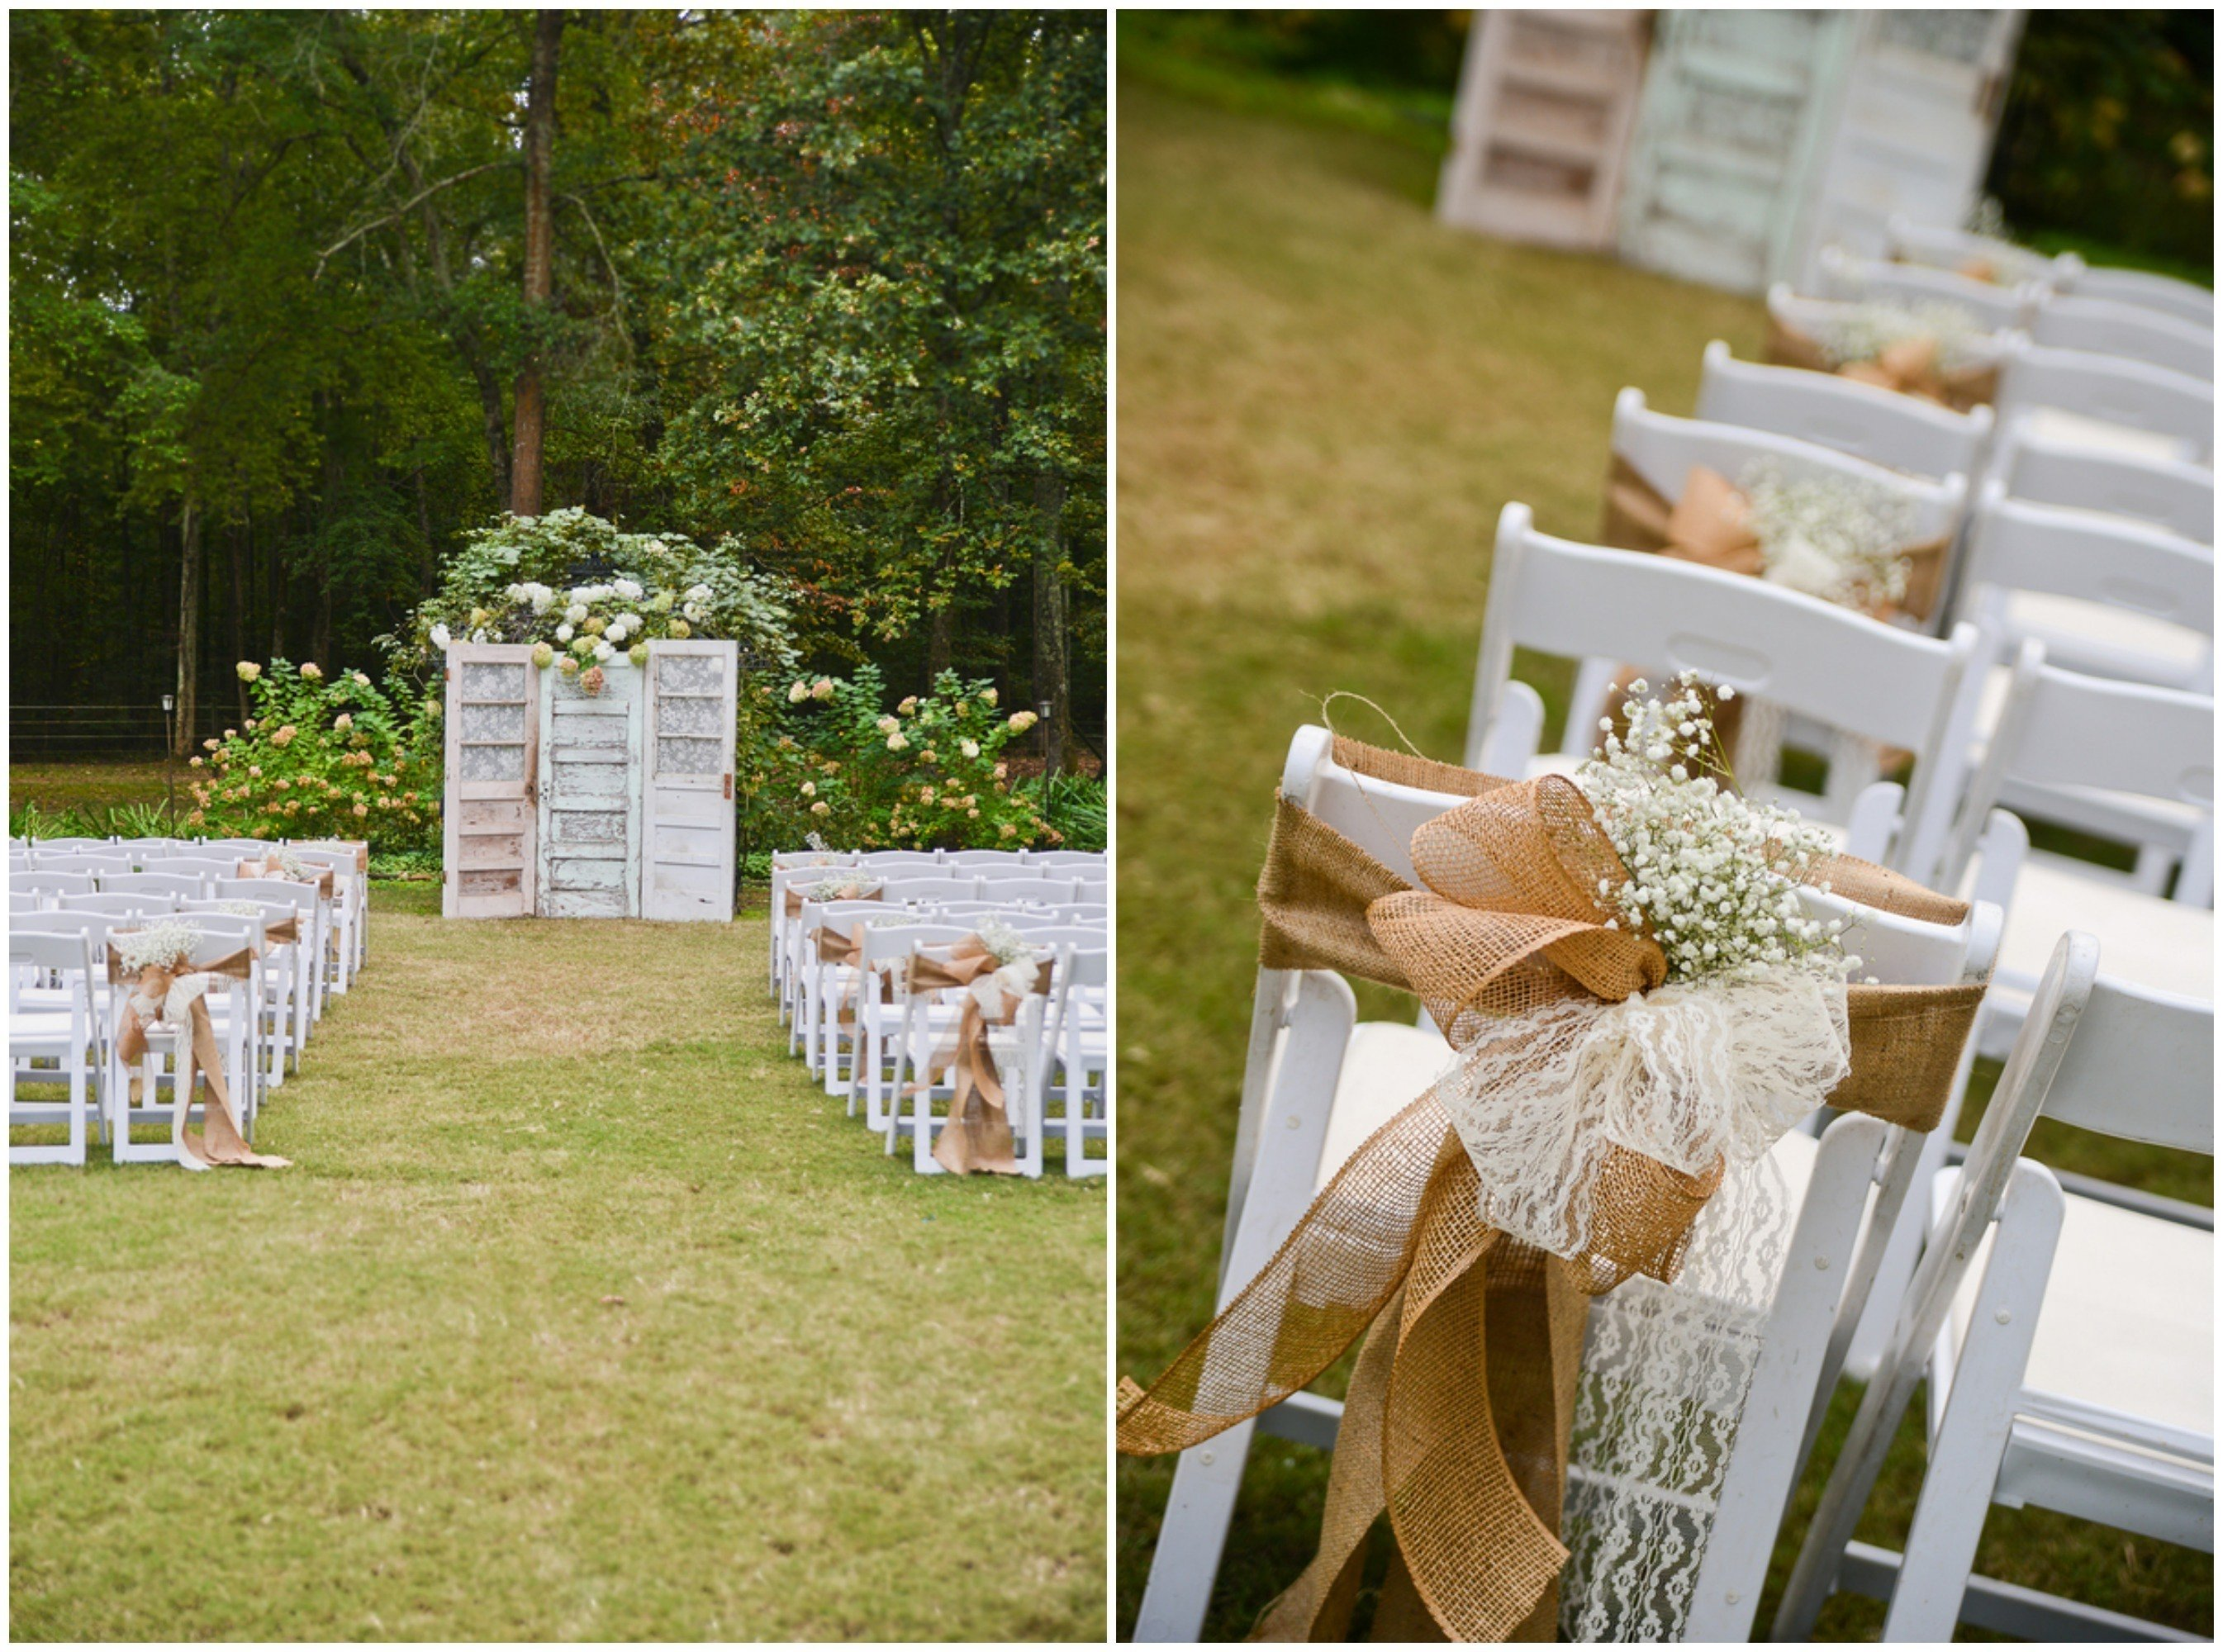 10 Attractive Small Wedding Ideas For Summer modern style outdoor wedding decoration ideas with outdoor country